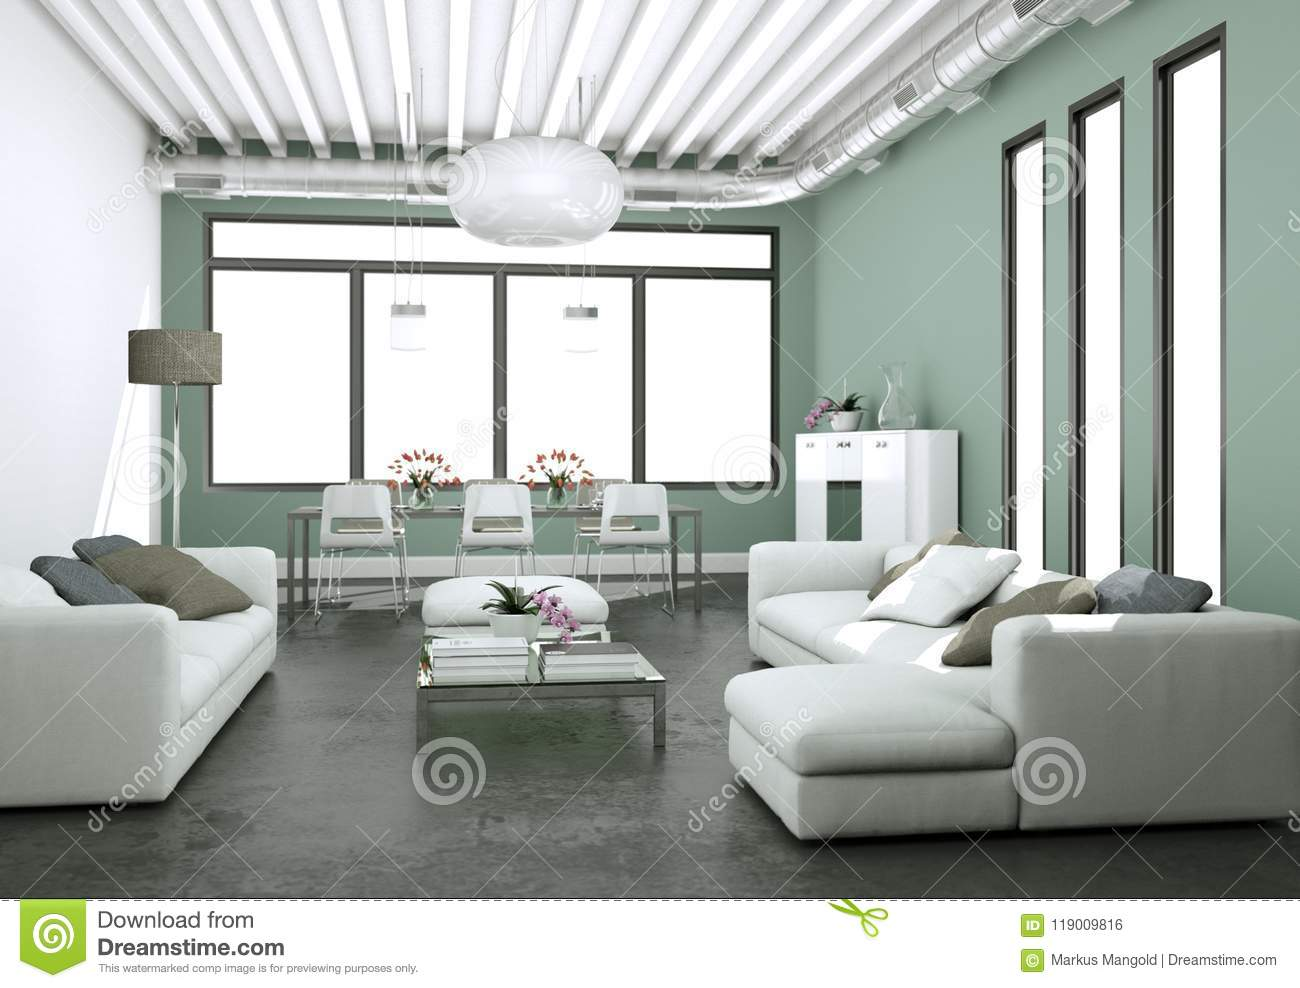 Modern Bright Living Room Interior Design With Sofas And Grey Walls Stock Illustration Illustration Of Openspace Grey 119009816